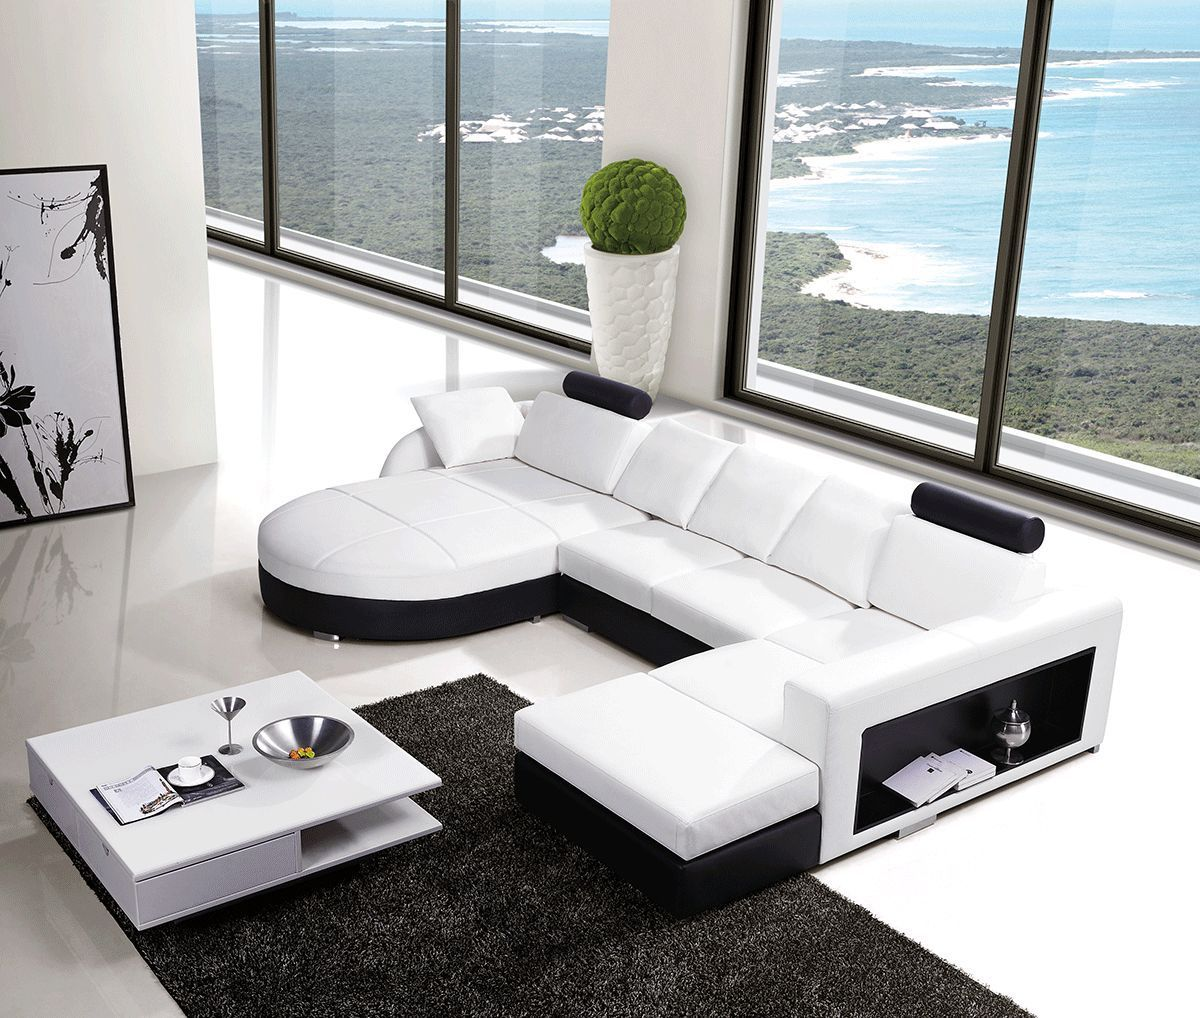 Round White Leather Sectionals Leather Sectional Sofa With Storage Bookshelf Eleg Leather Sectional Sofa Modern Leather Sectional Sofas Modern Sofa Sectional